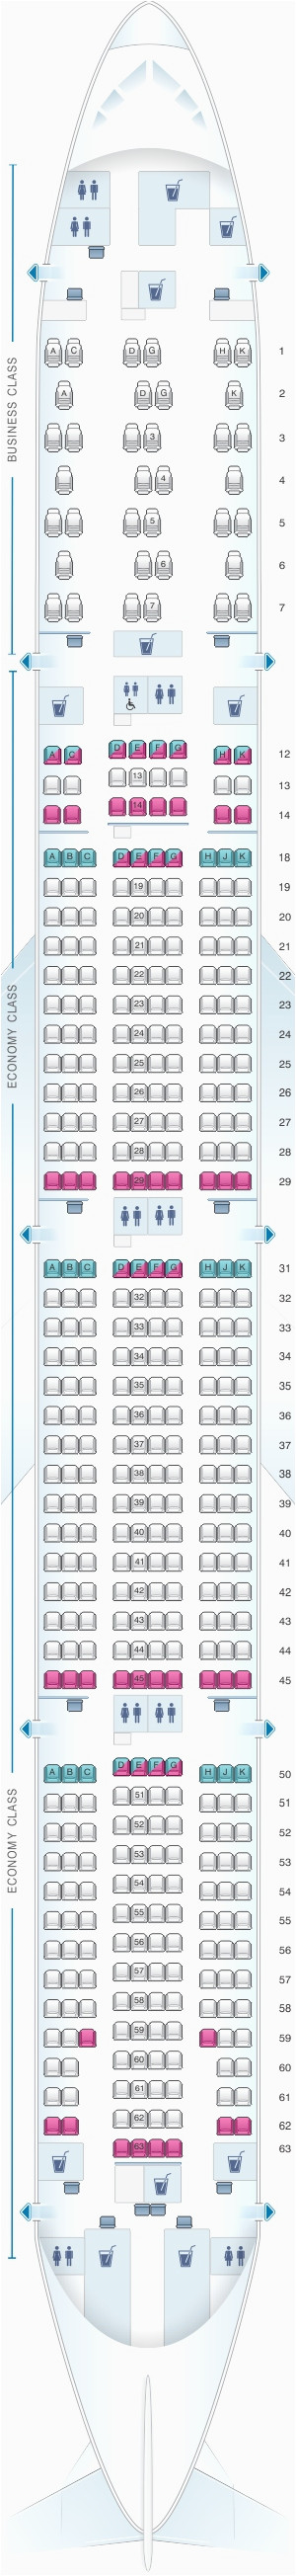 aircraft 77w seat map awesome seatguru seat map emirates boeing 777